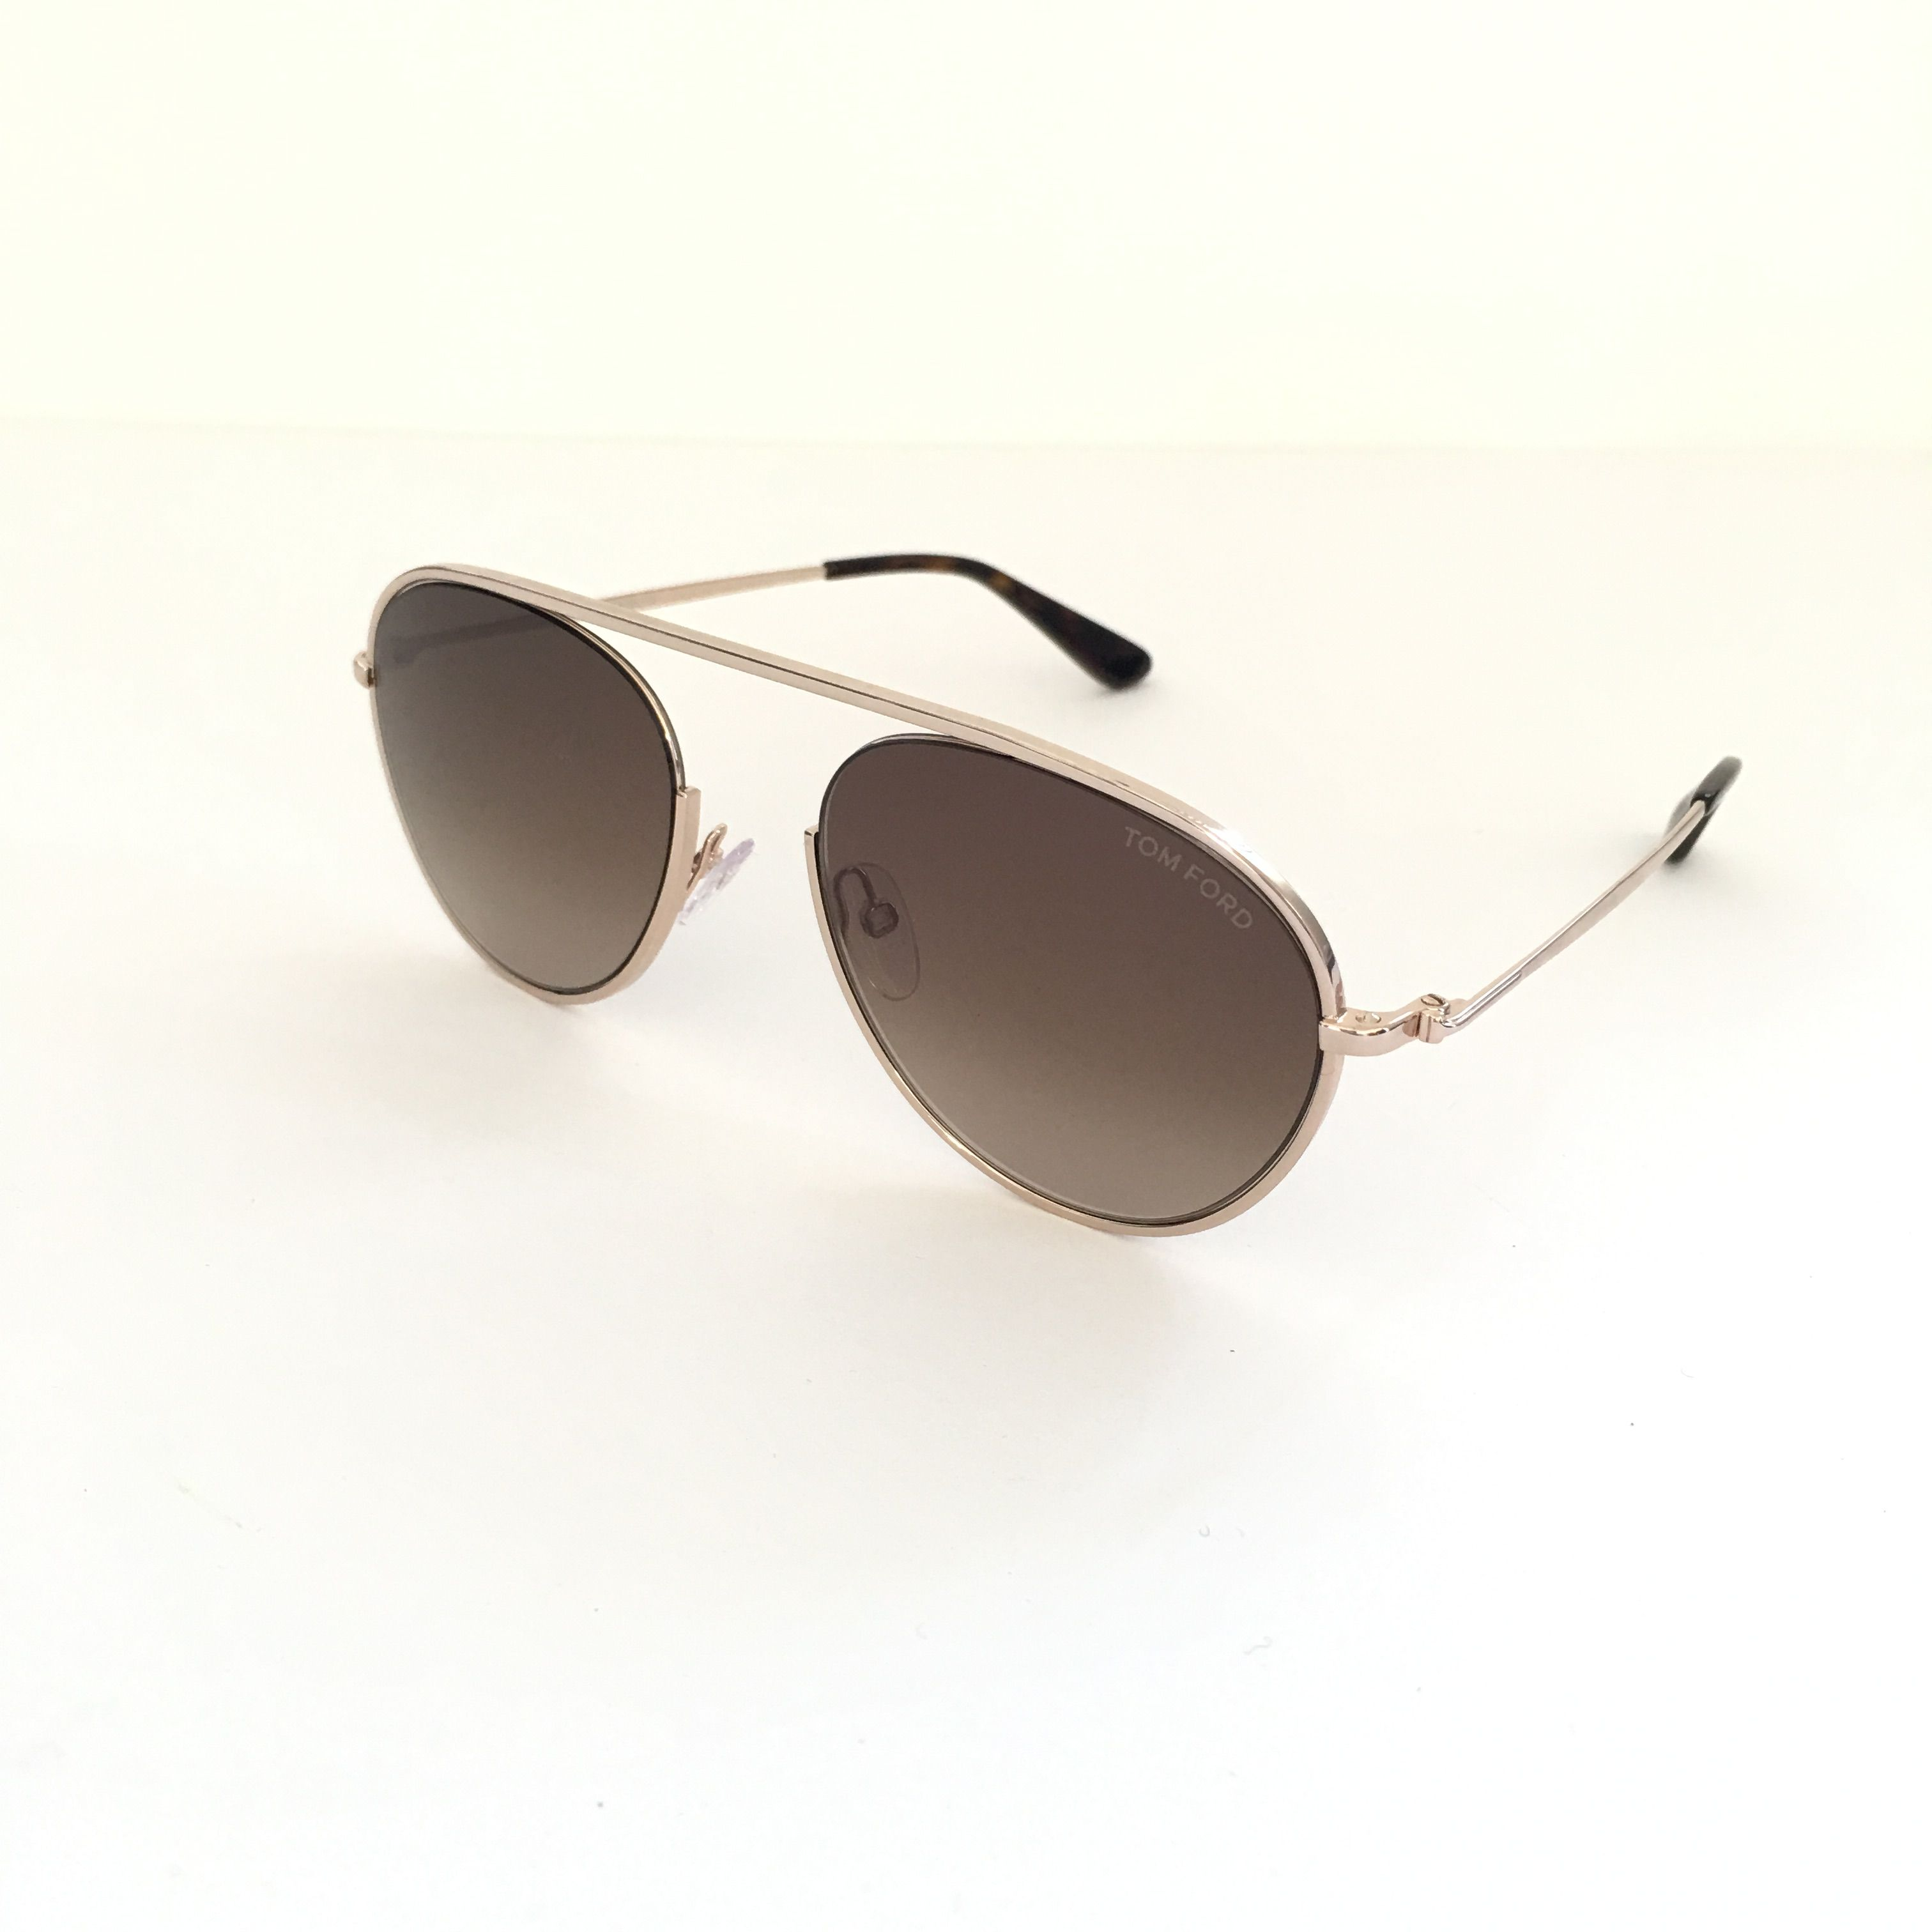 70fd0bdbea95 Tom Ford - Fashionable eyewear for men and women - Eyeglasses and sunglasses  available with or